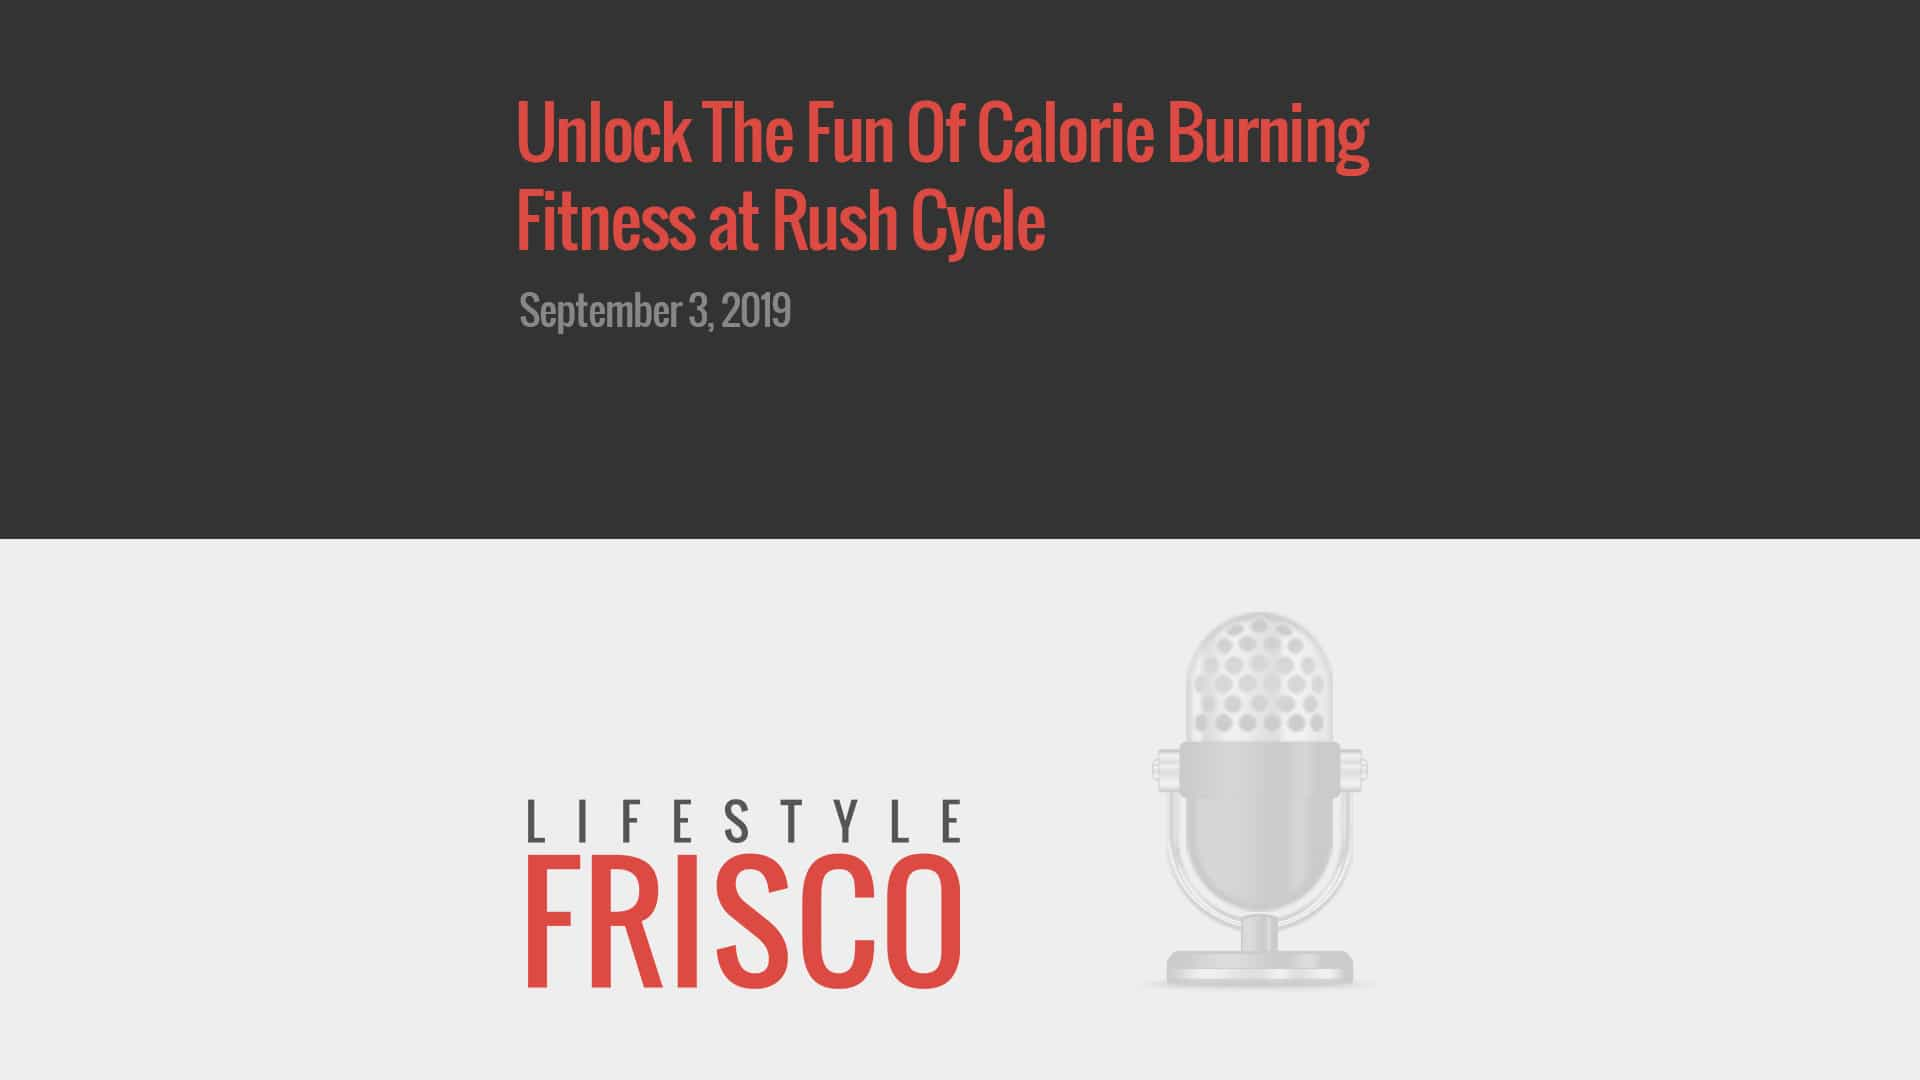 Unlock the Fun of Calorie Burning Fitness at Rush Cycle